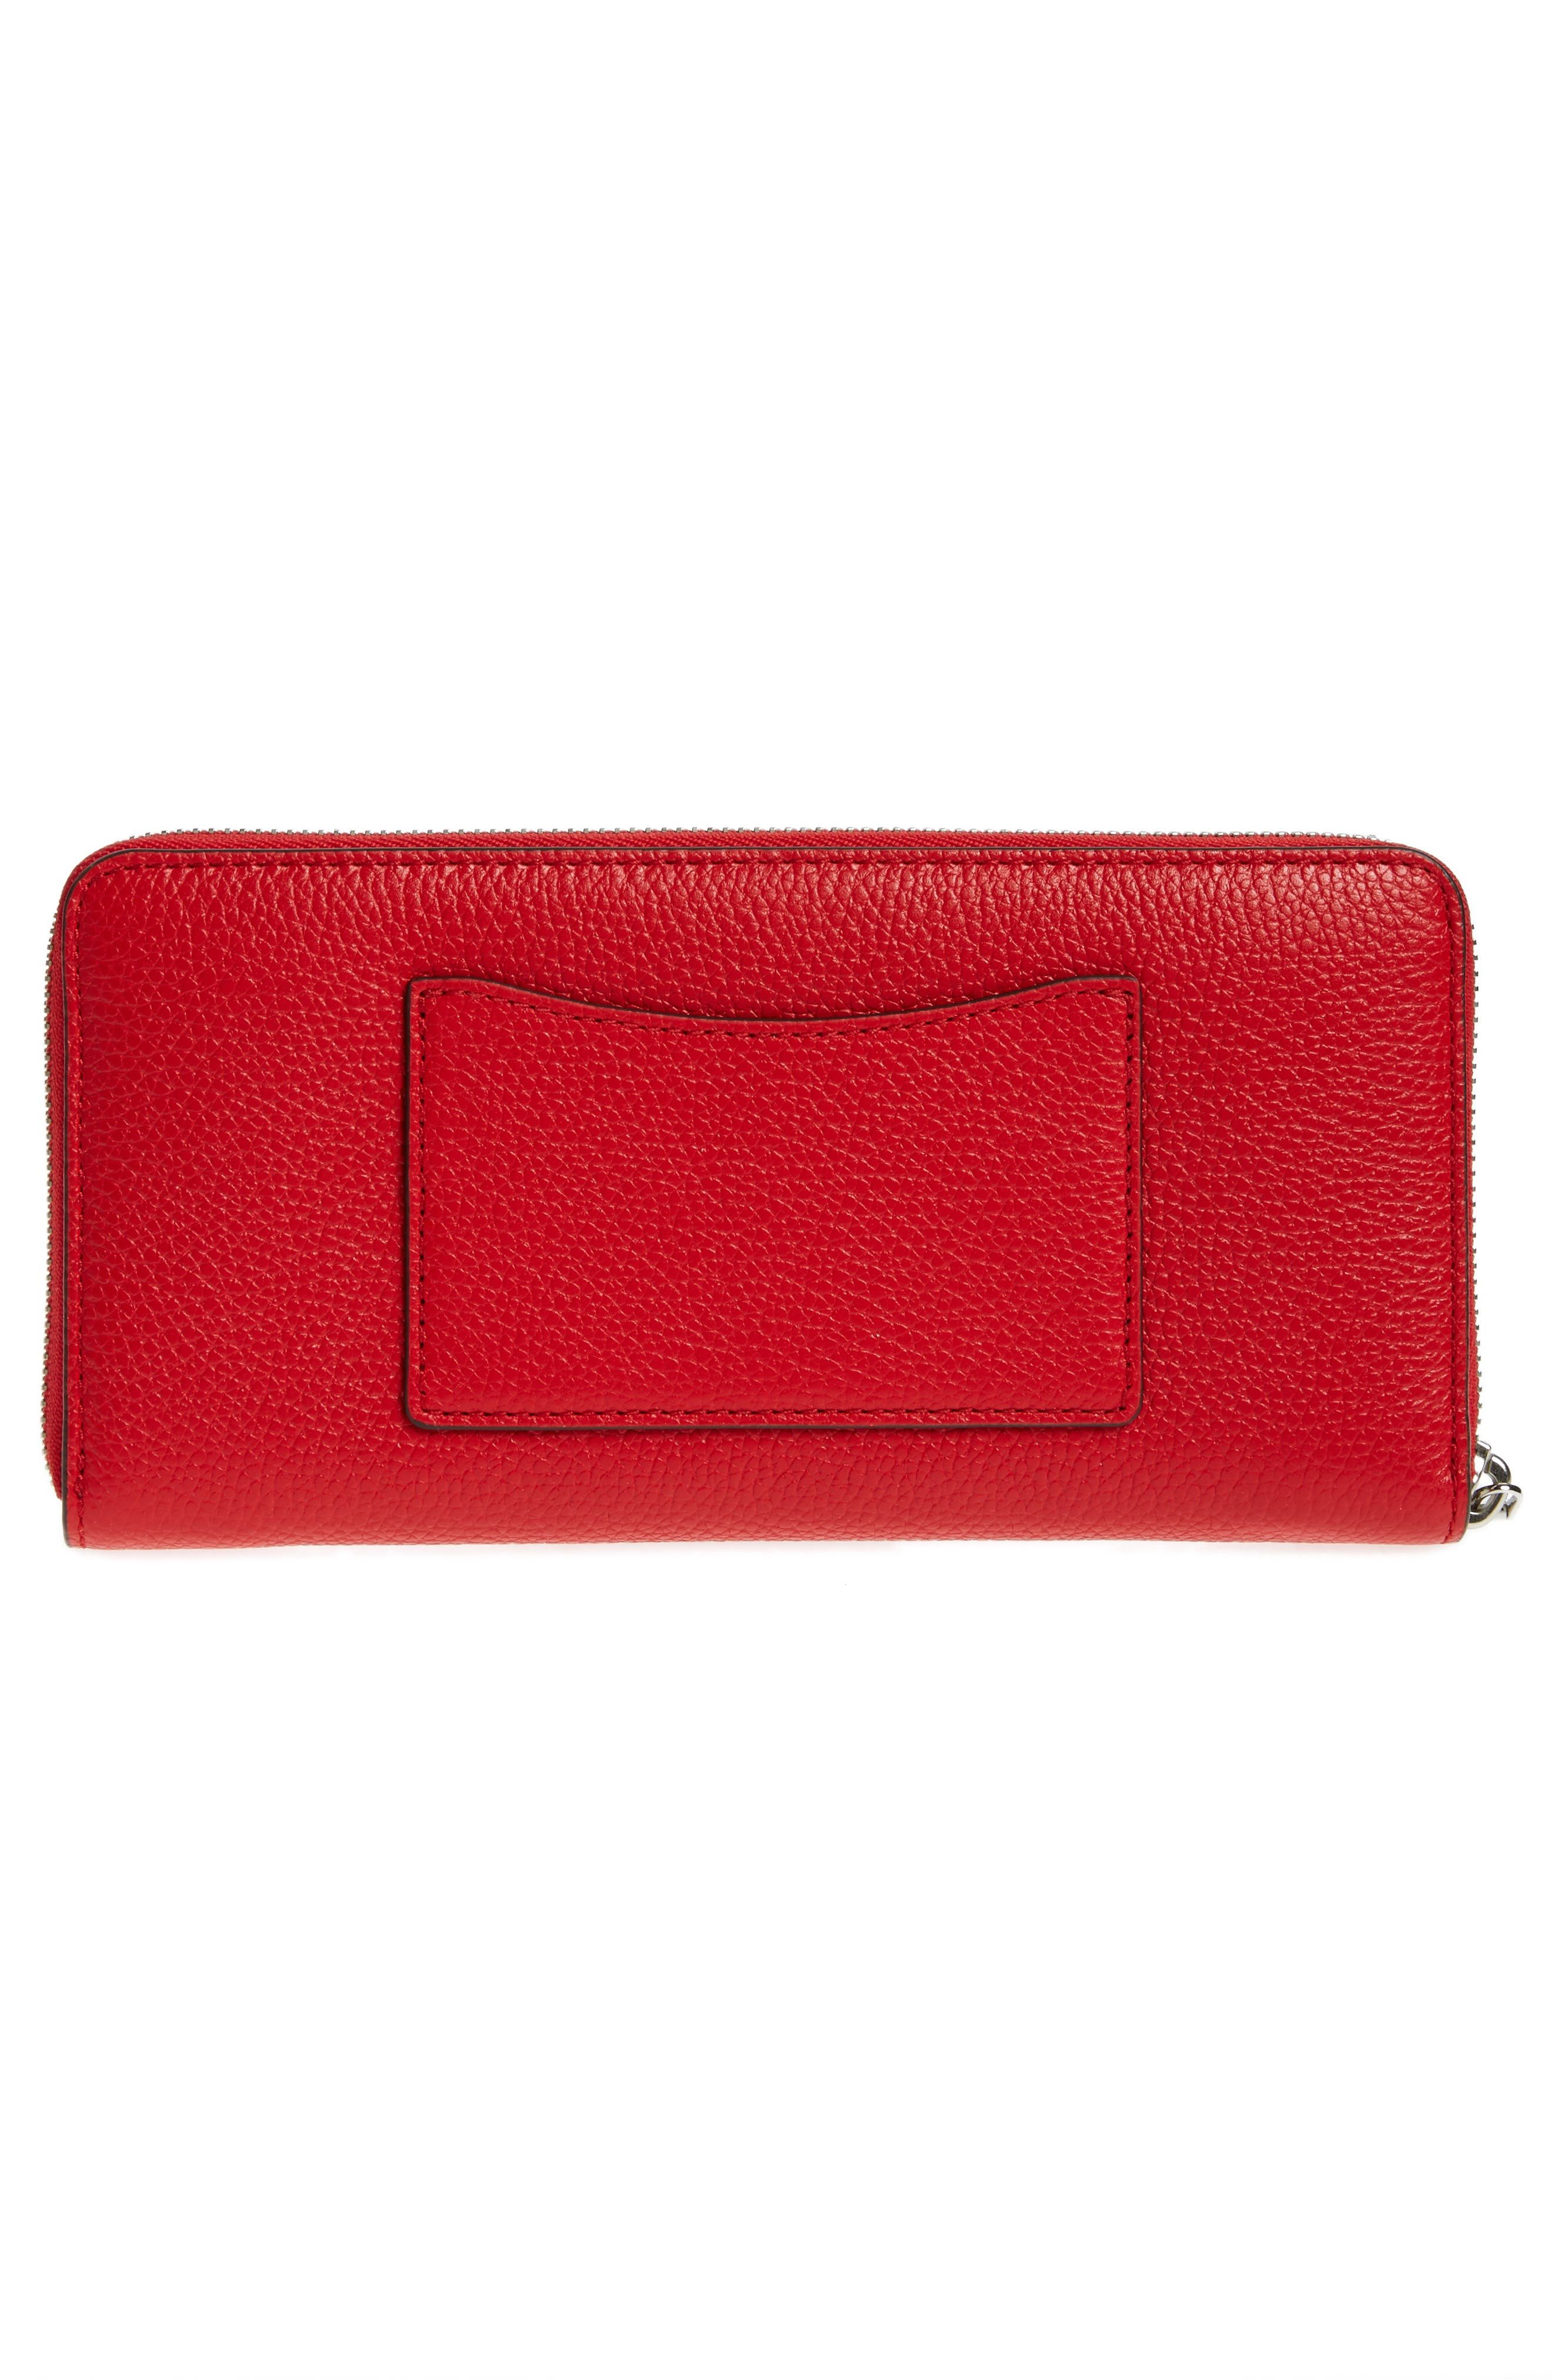 Mercer Leather Continental Wallet,                             Alternate thumbnail 4, color,                             Bright Red